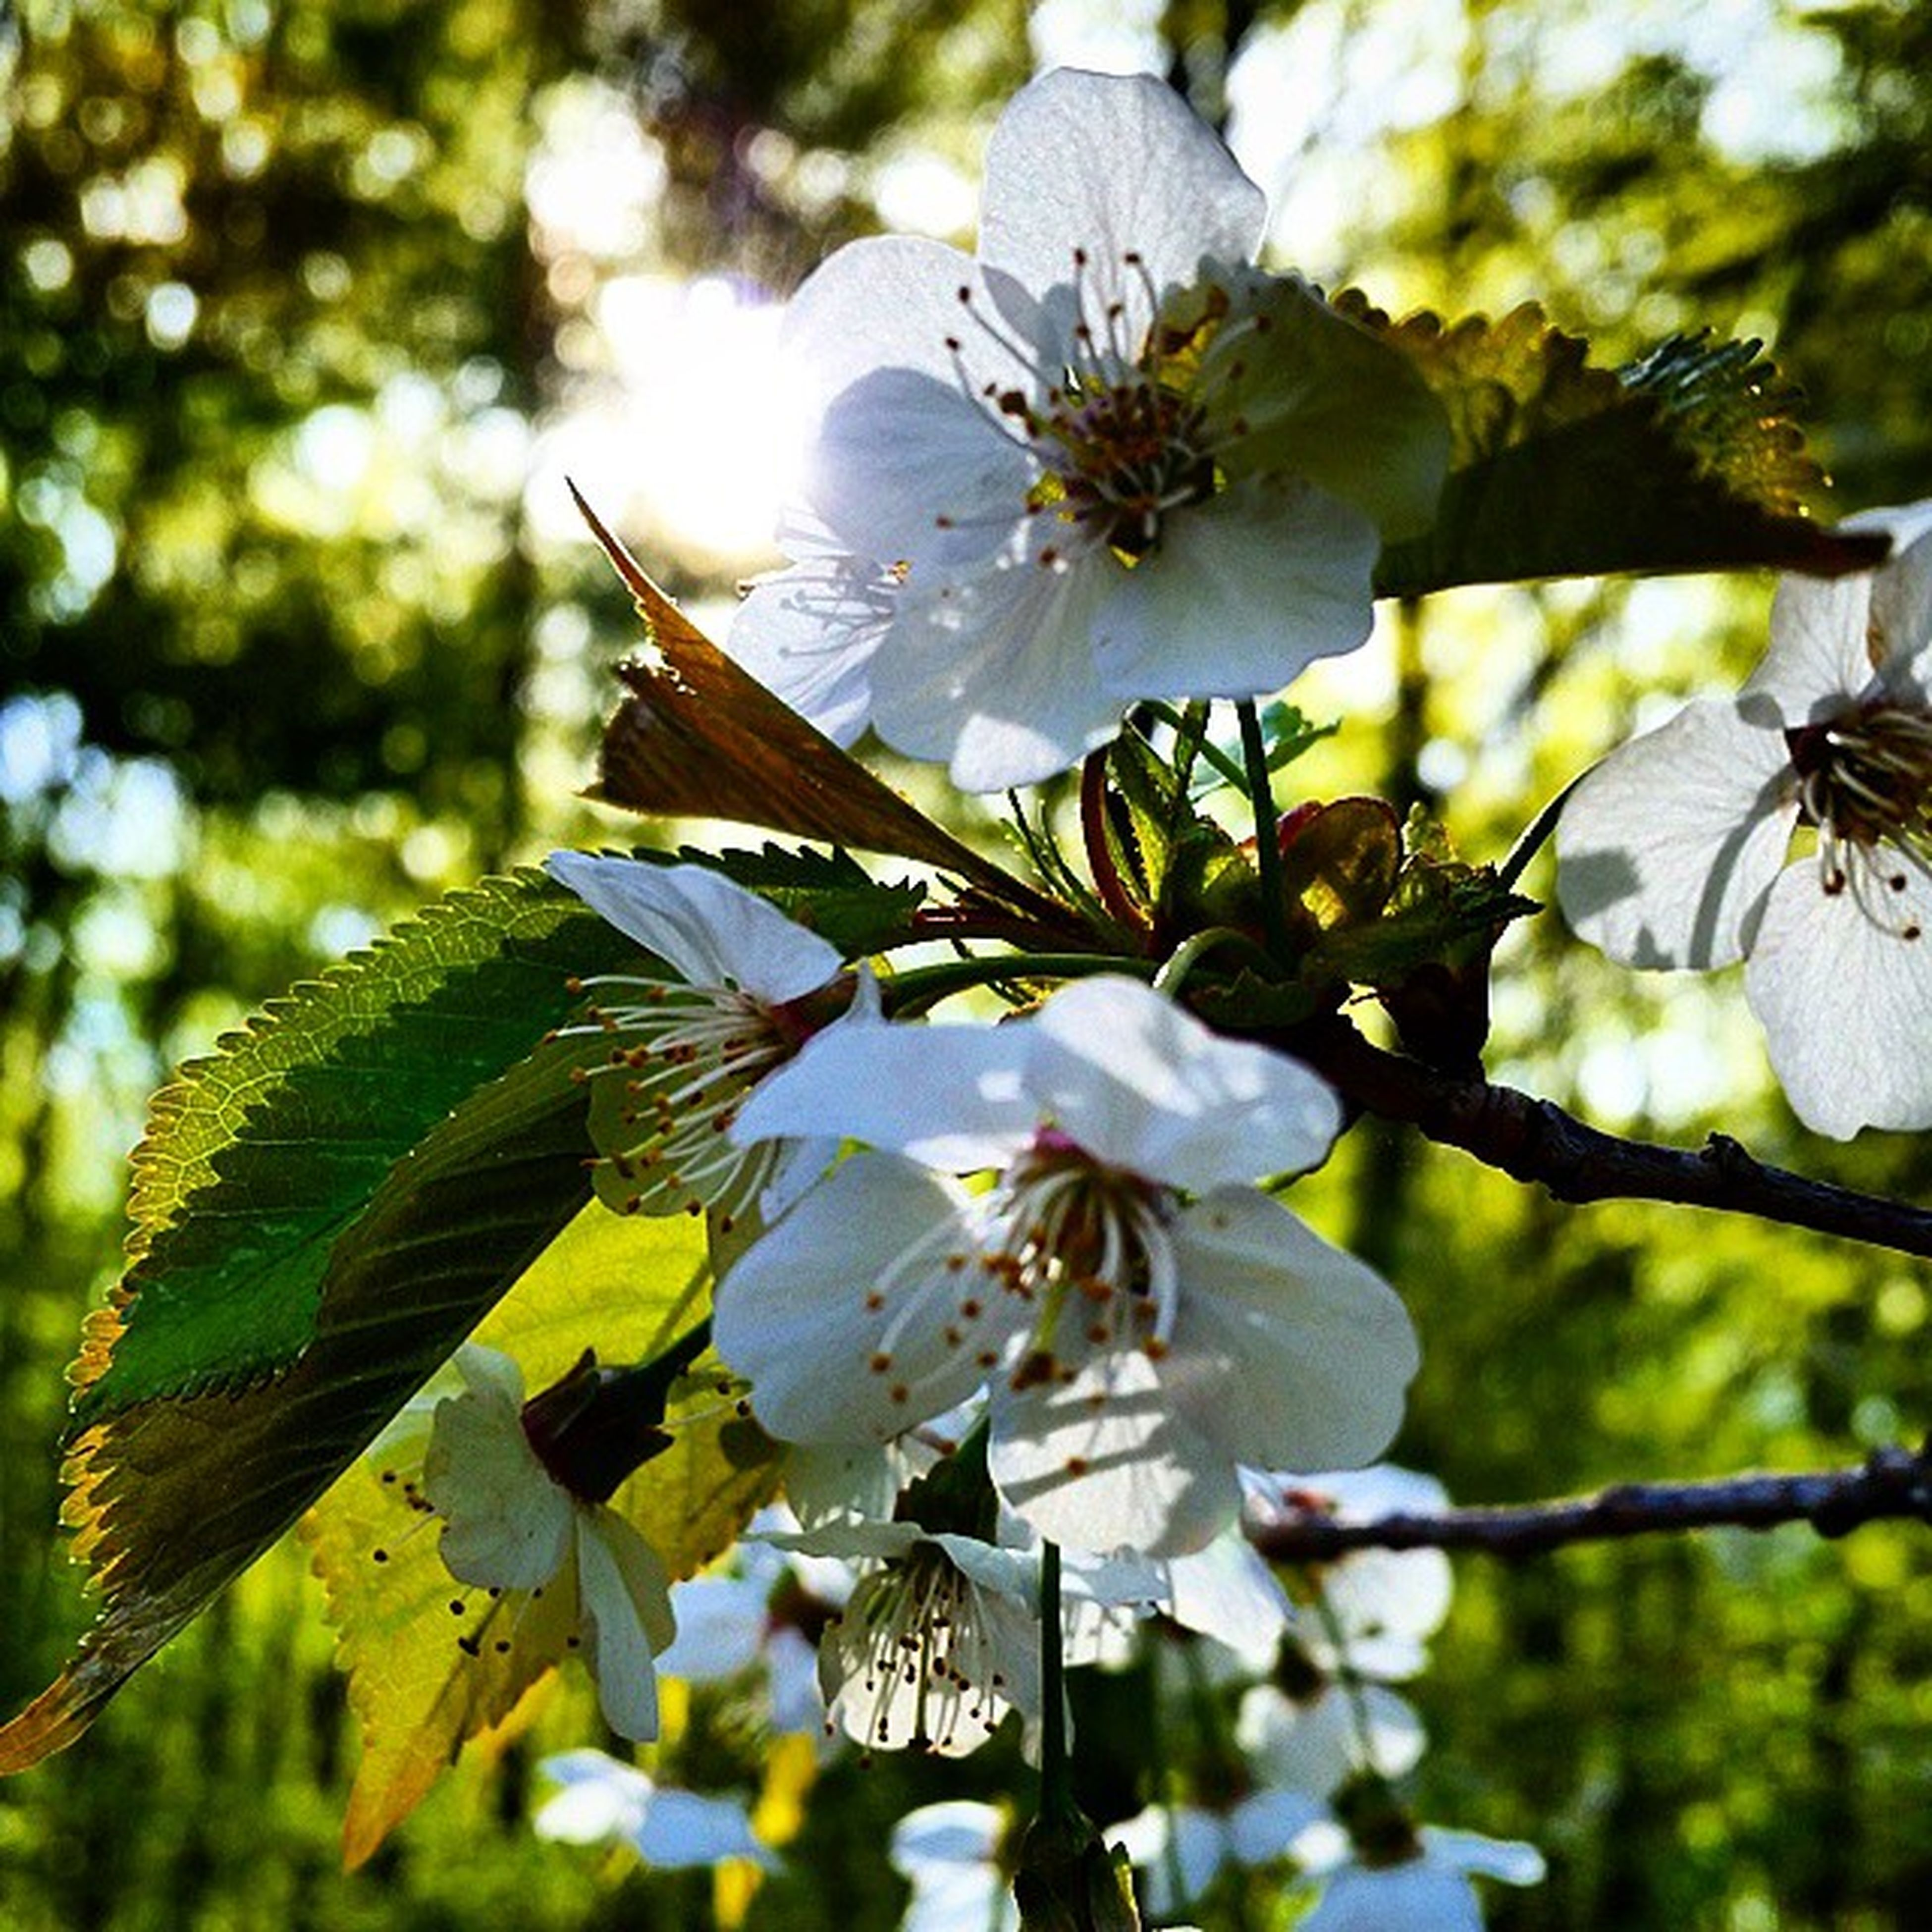 flower, freshness, growth, fragility, branch, tree, low angle view, petal, focus on foreground, beauty in nature, nature, blossom, white color, leaf, in bloom, close-up, blooming, cherry blossom, flower head, springtime